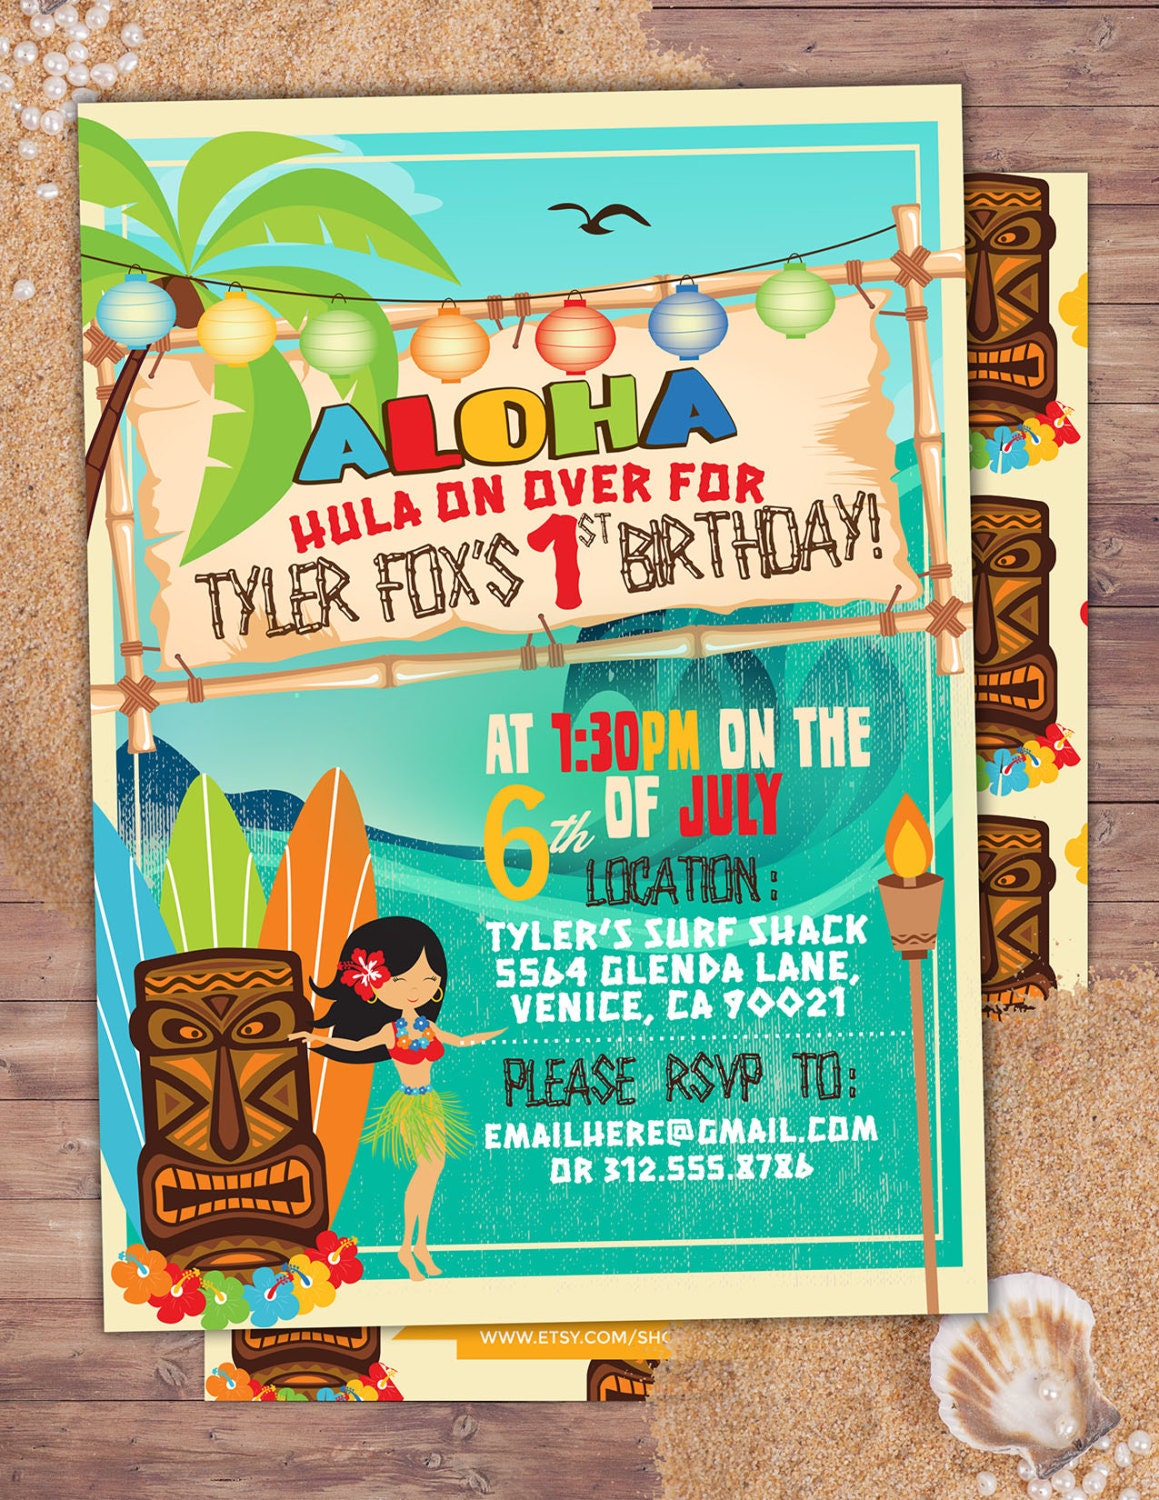 Tiki party Hawaii invitation Pool Party Invitation surfer – Birthday Pool Party Invitation